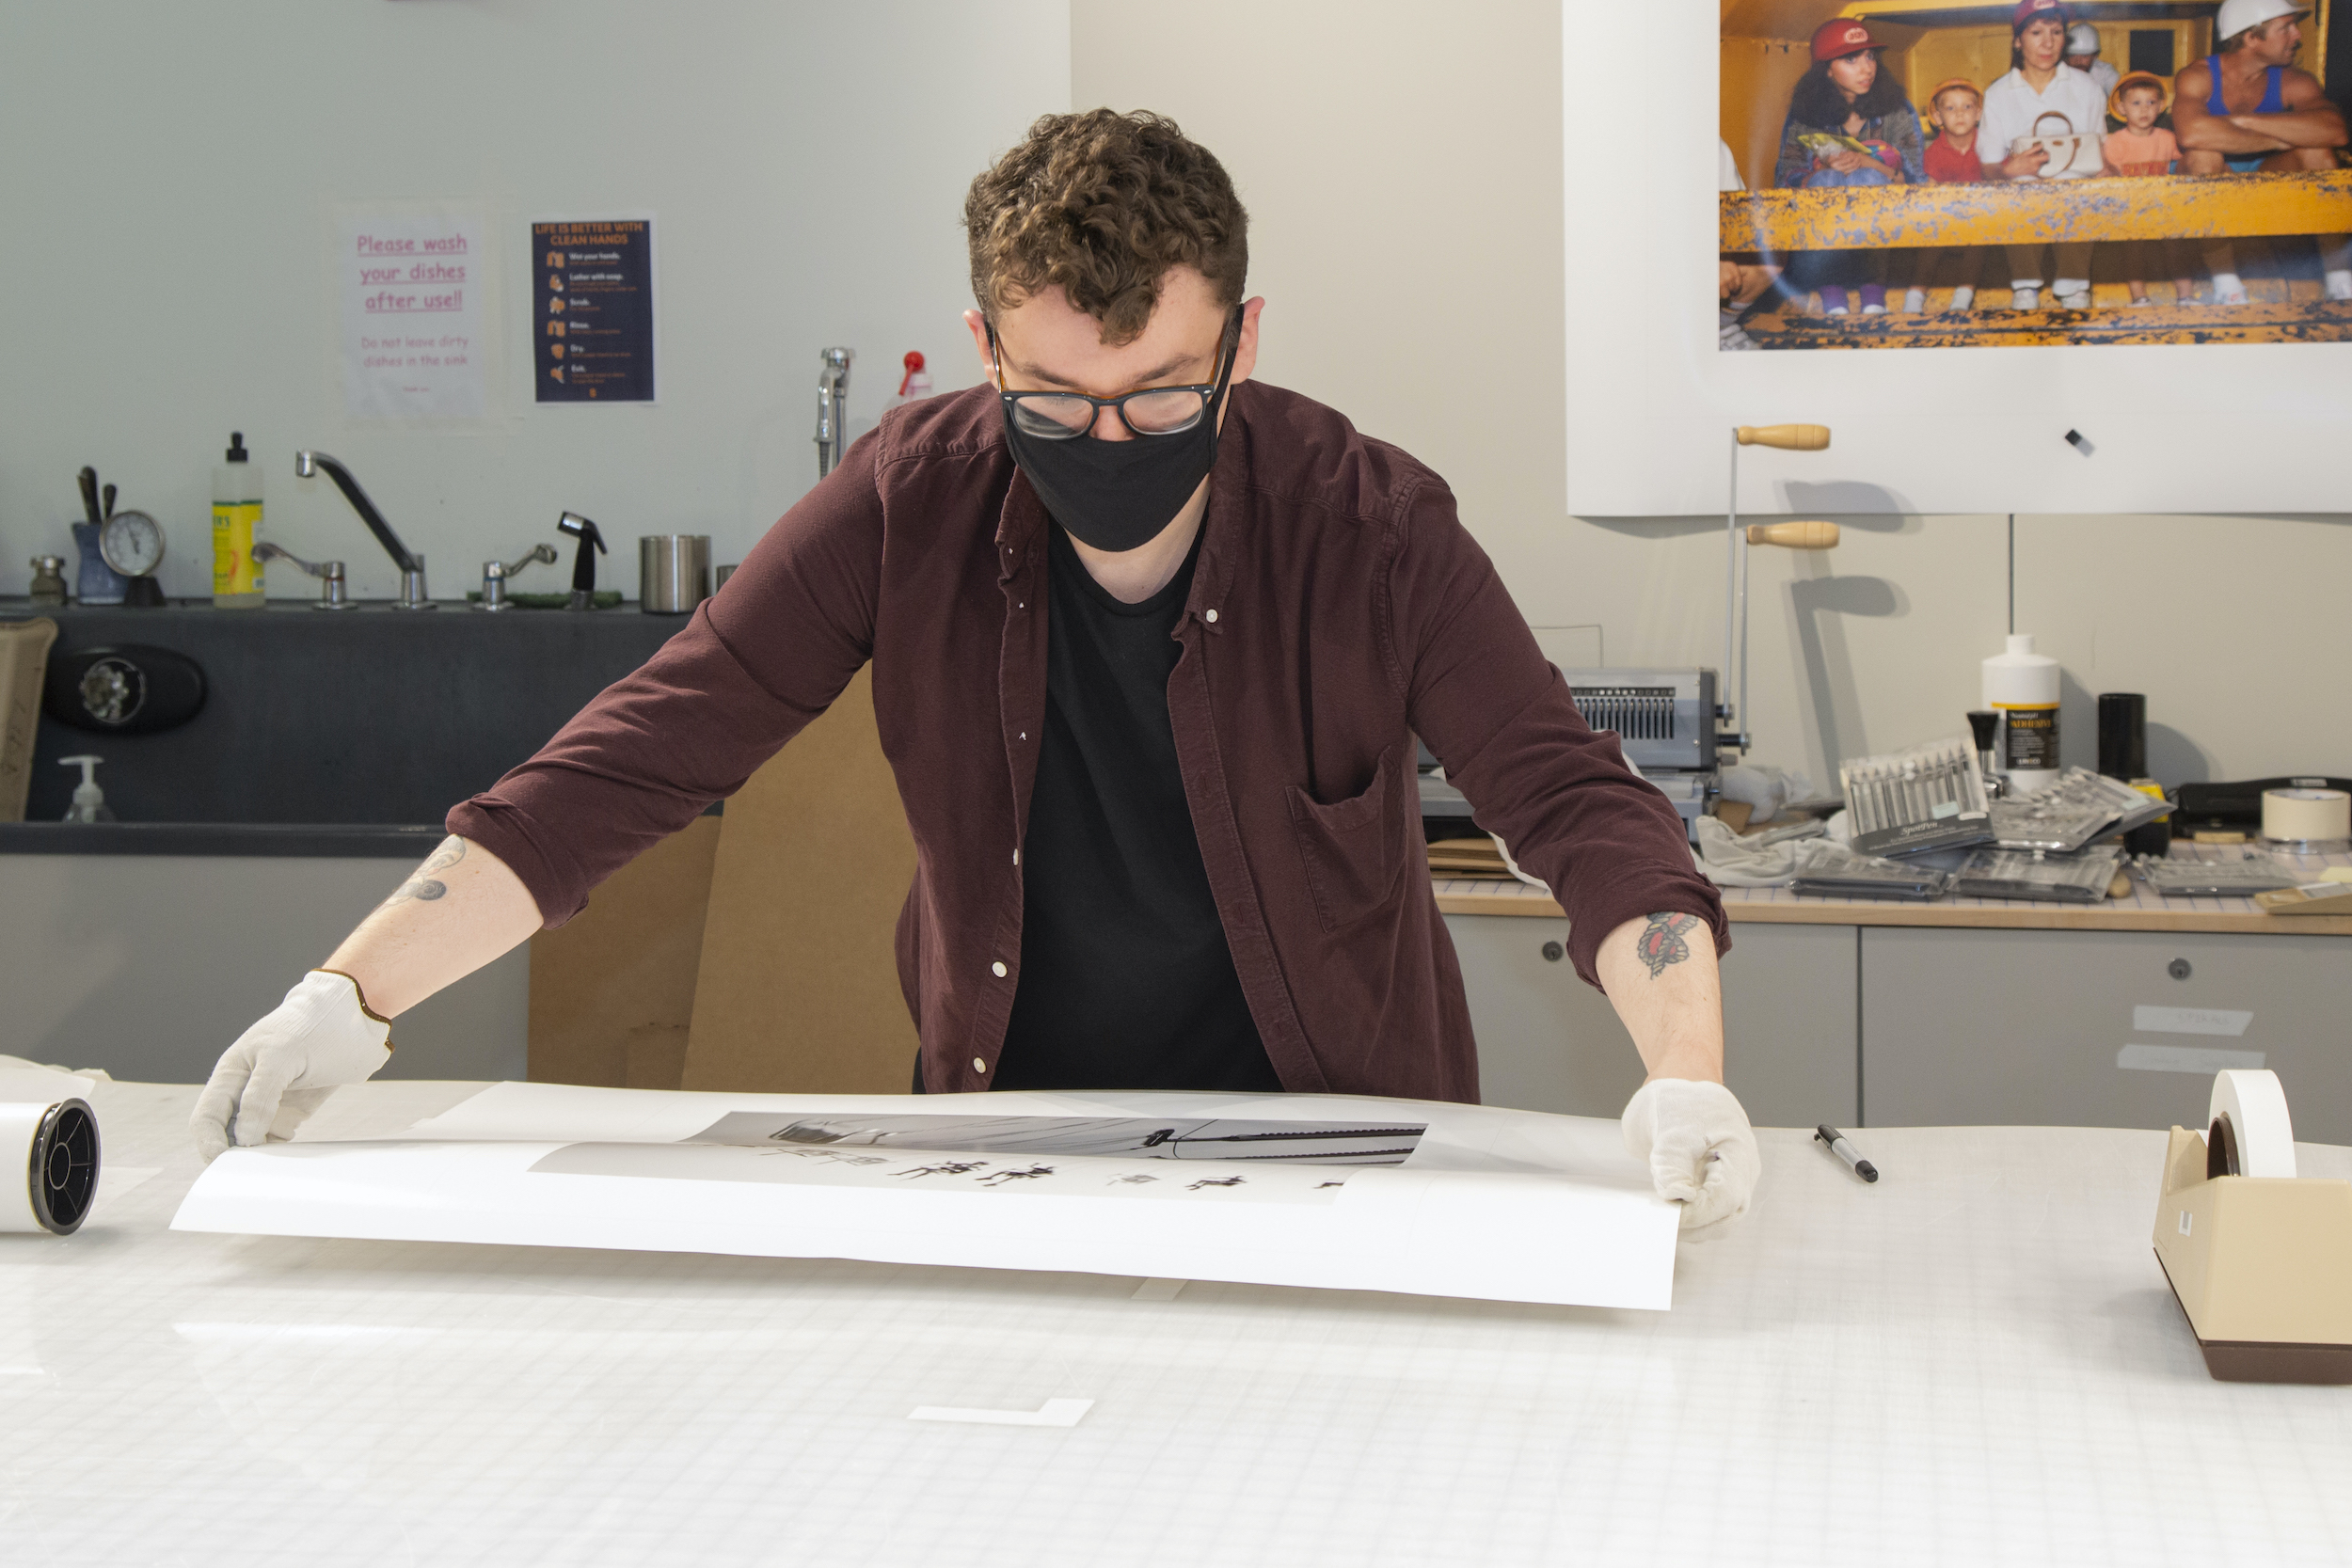 staff member working on large photo at a table